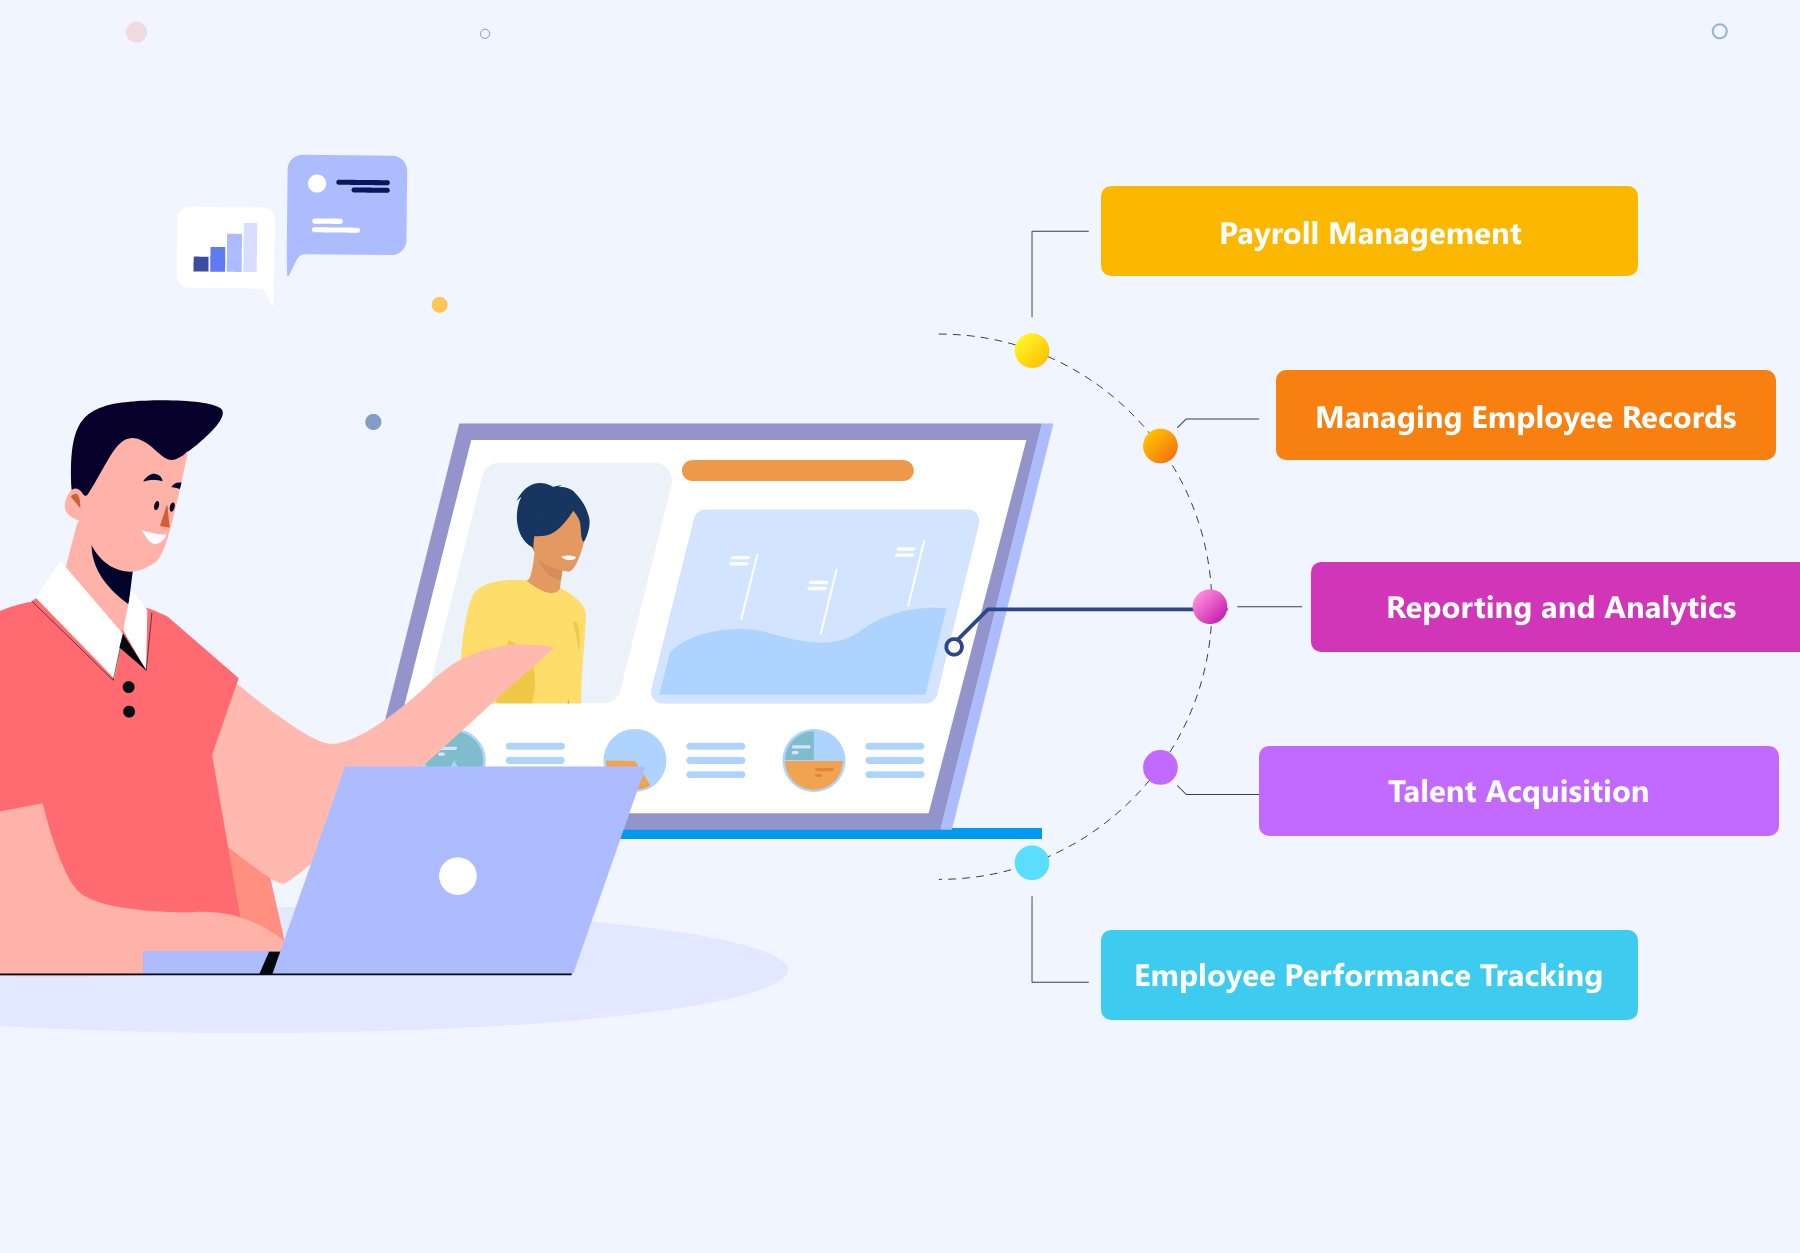 Enterprise Processes Benefited Most From Unified Human Resource Management Software